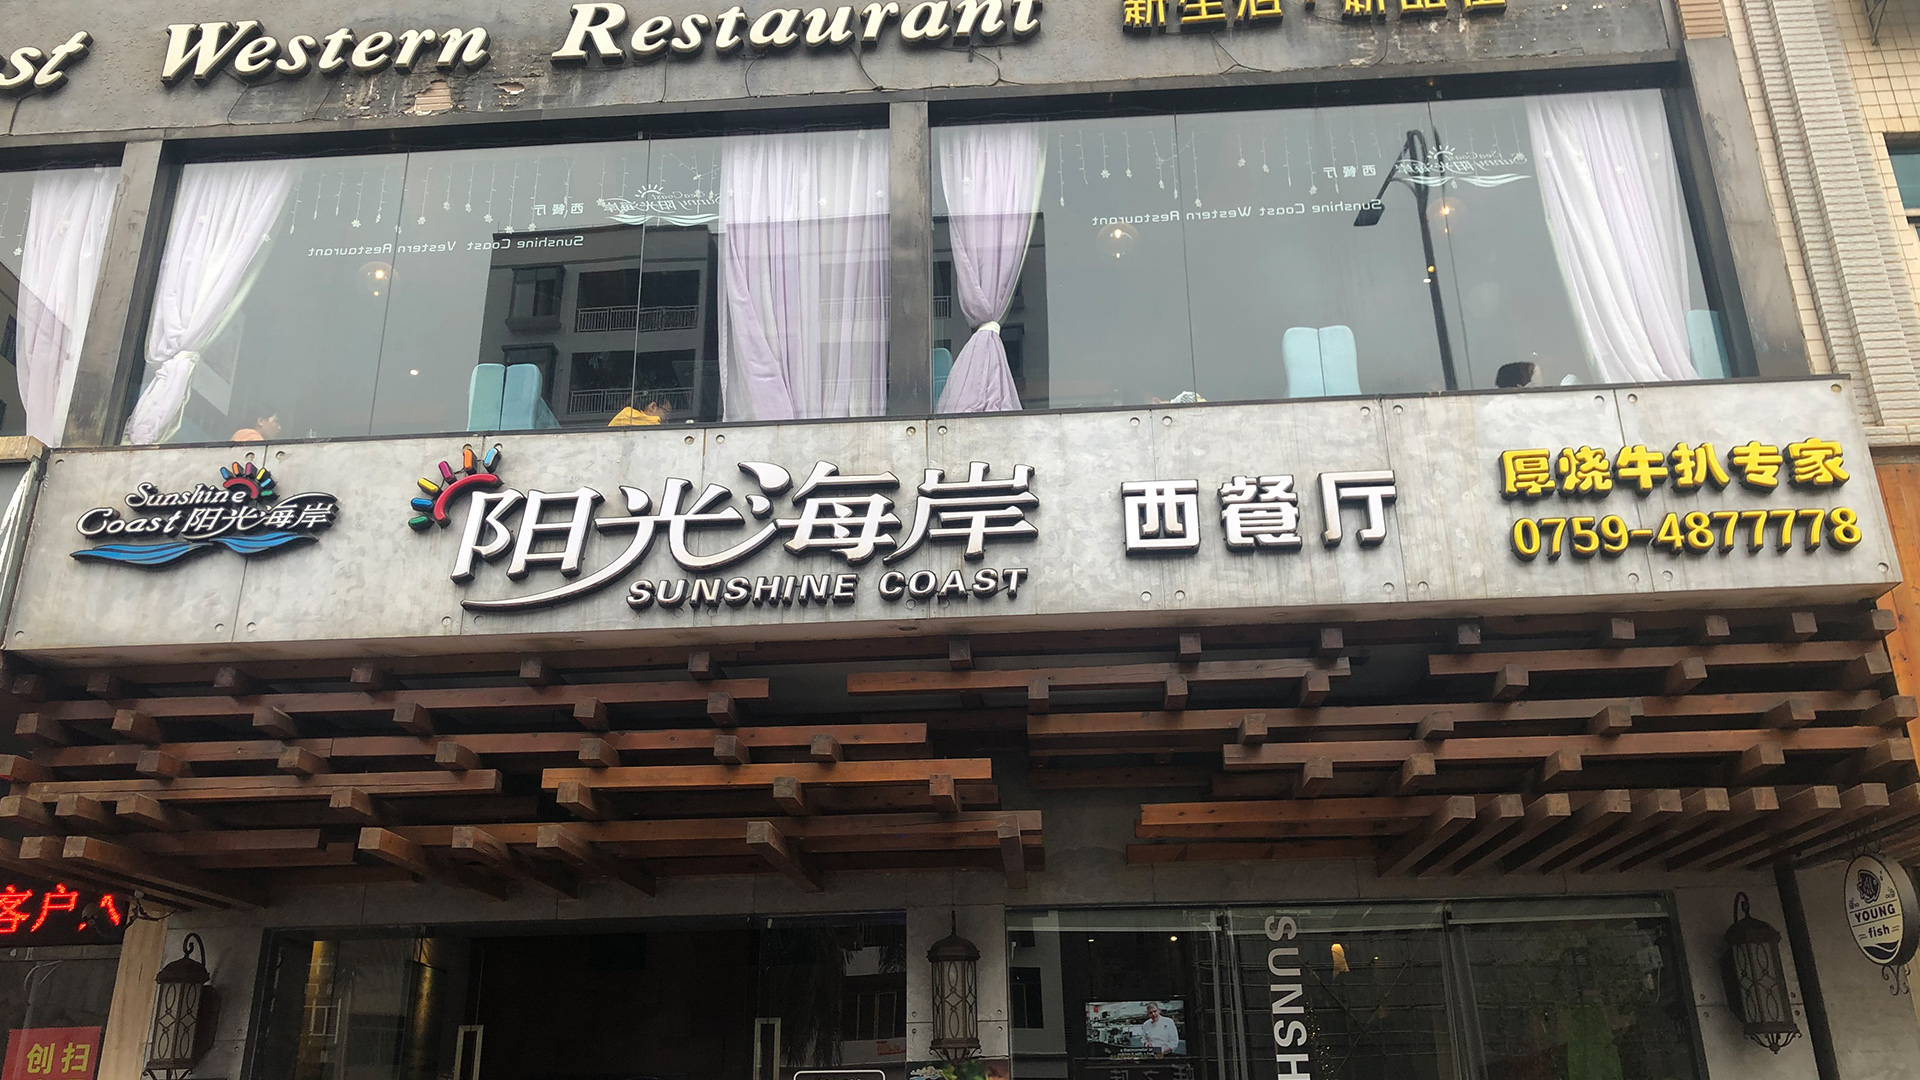 Customized Sunshine Coast Western Restaurant in Xuwen County. manufacturers FromChina